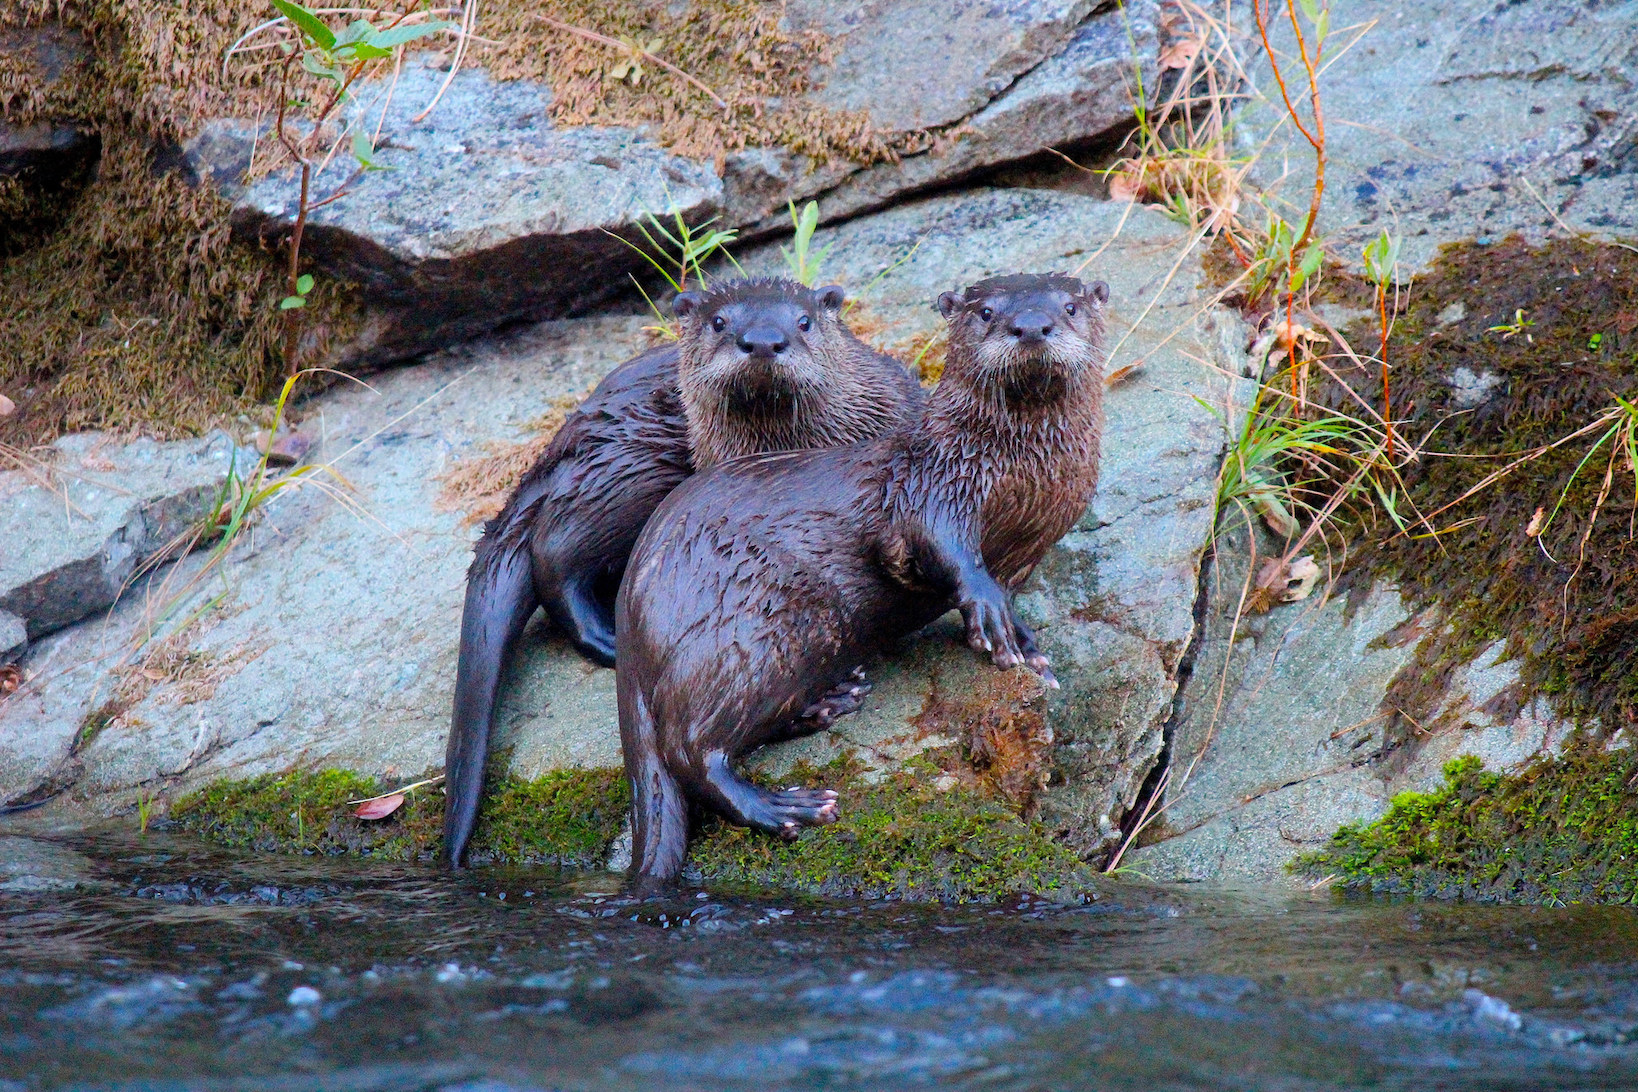 River otters posing